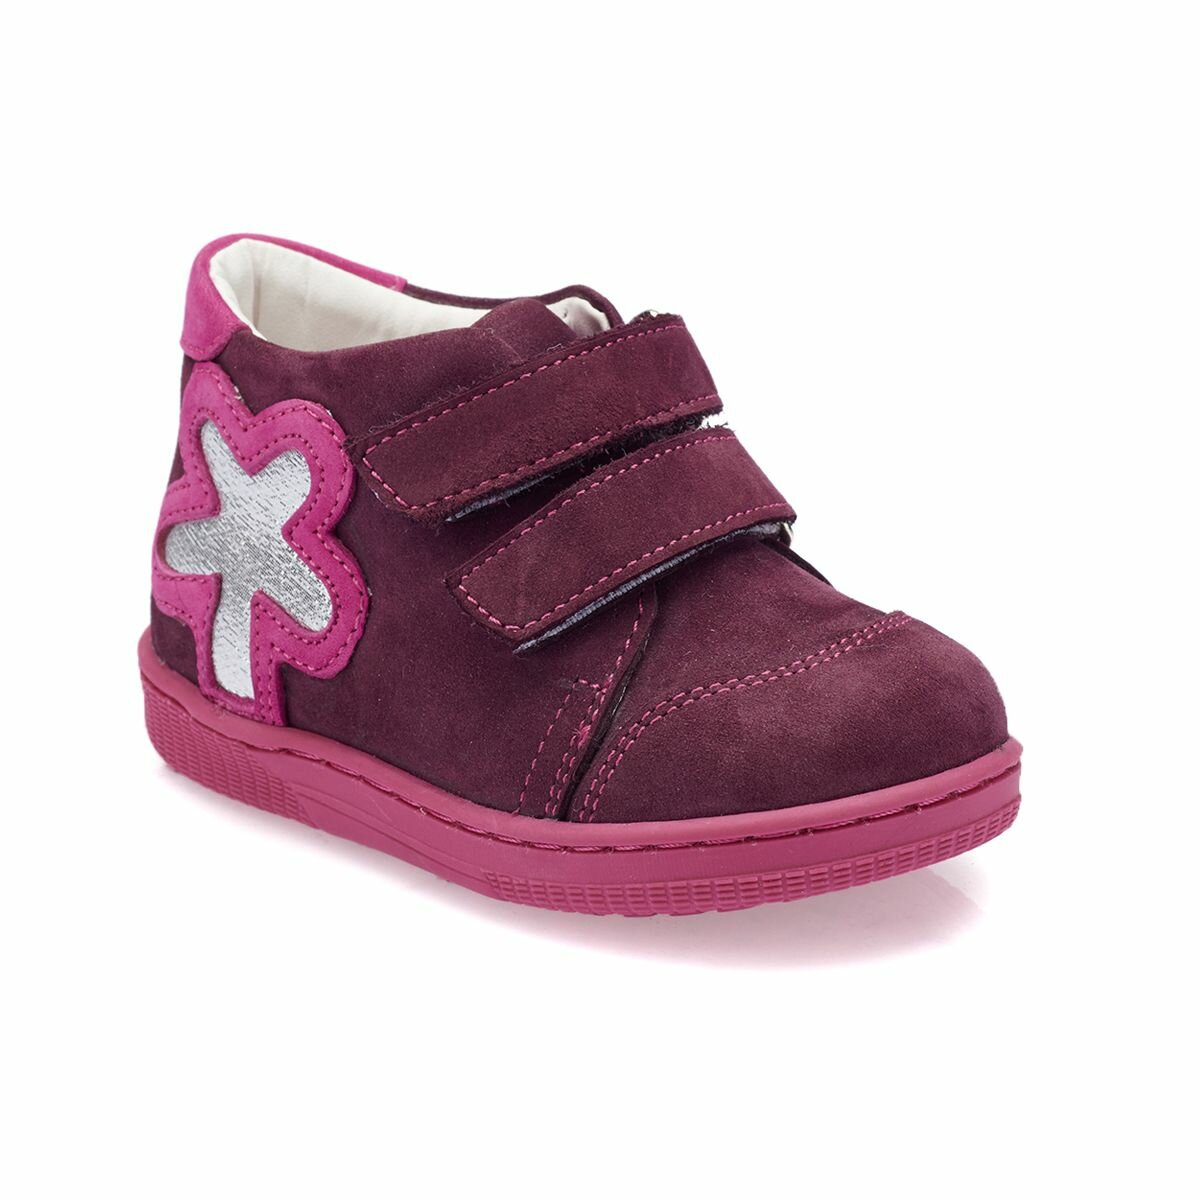 FLO 82.510508.I Purple Female Child Sneaker Shoes Polaris